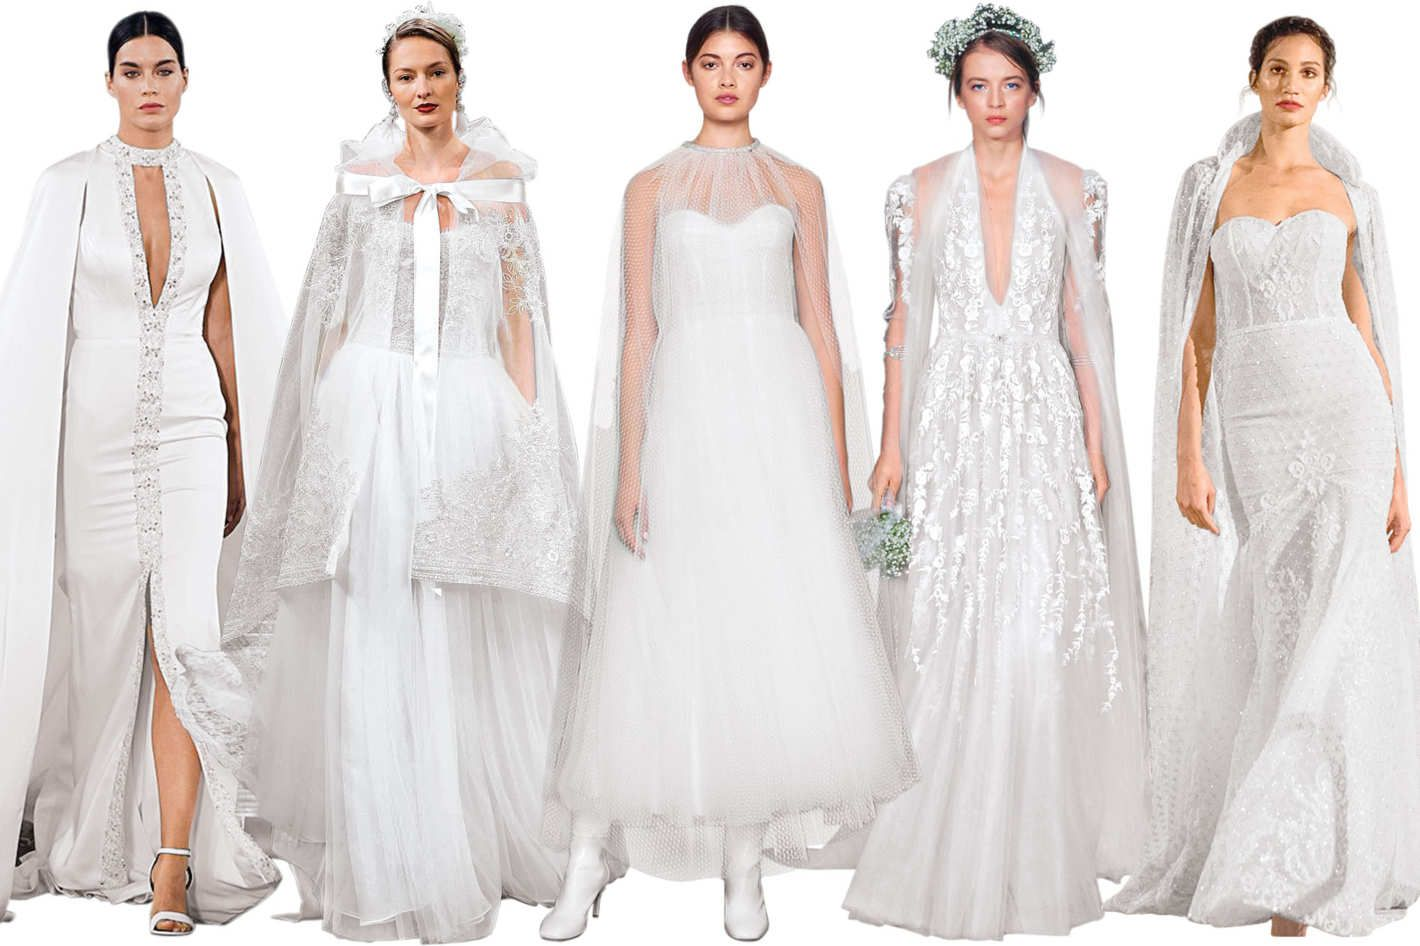 Chicago wedding dress shops   Wedding Gowns That Show Just a Little Extra Skin  Summer wedding